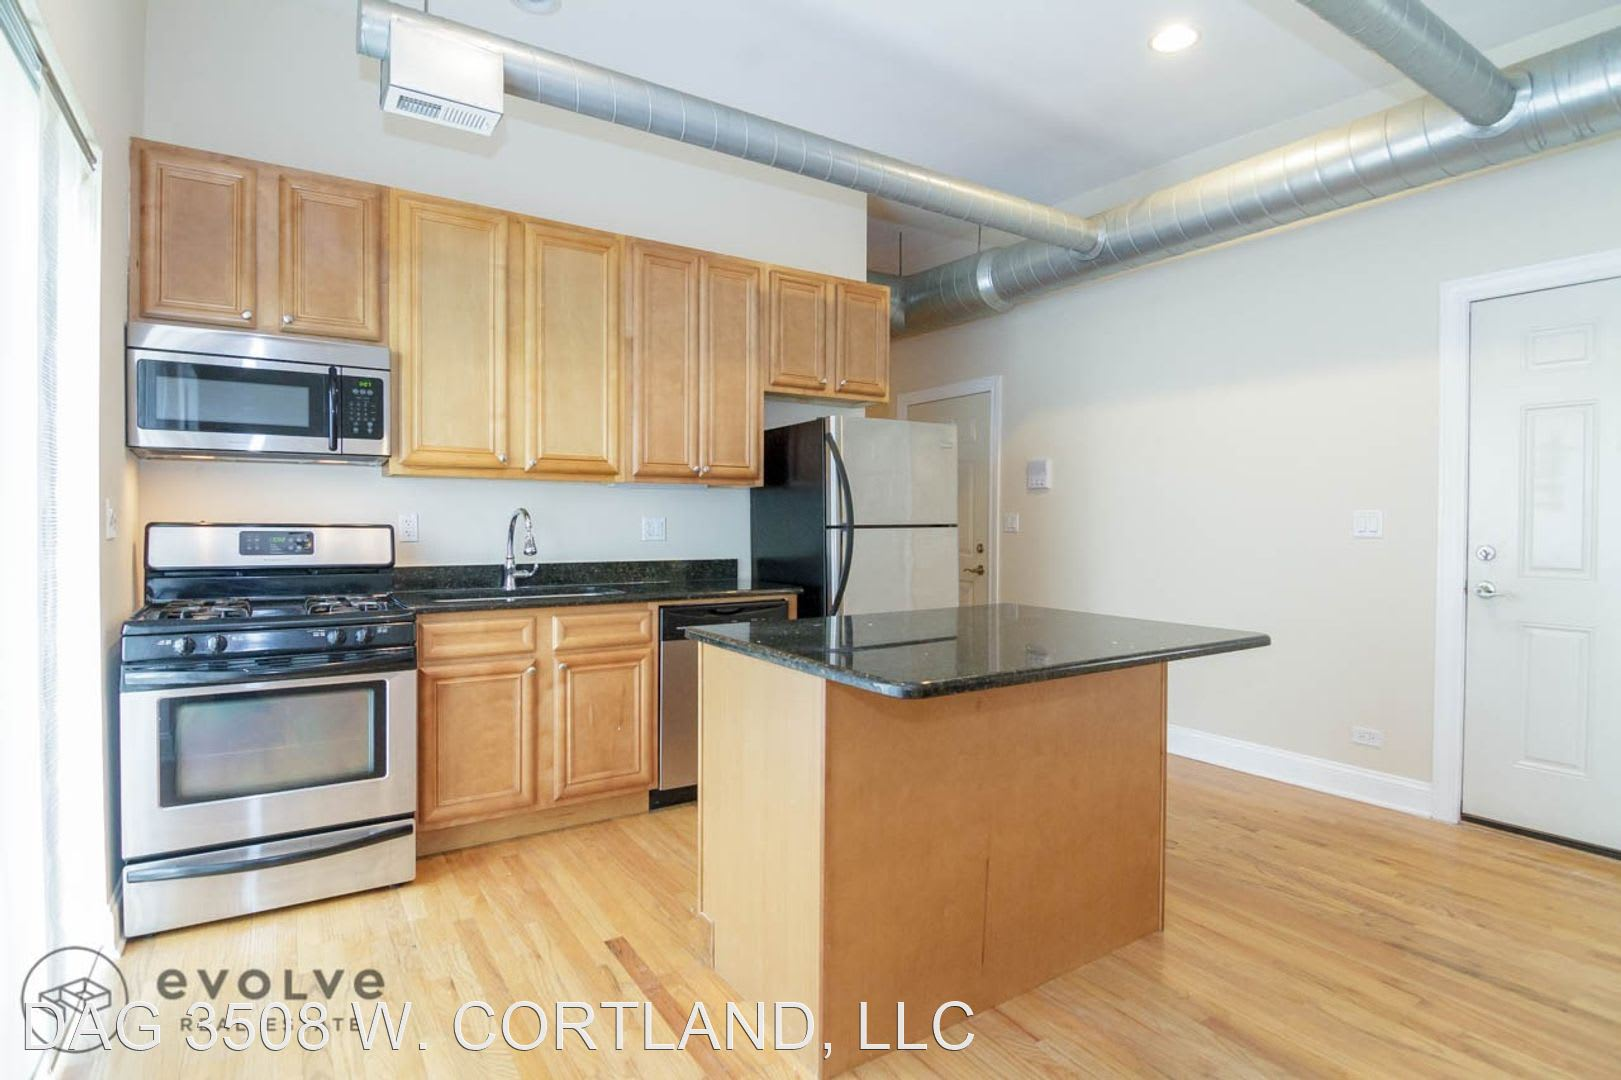 Apartments In Humboldt Park Chicago Il See Photos Floor Plans More